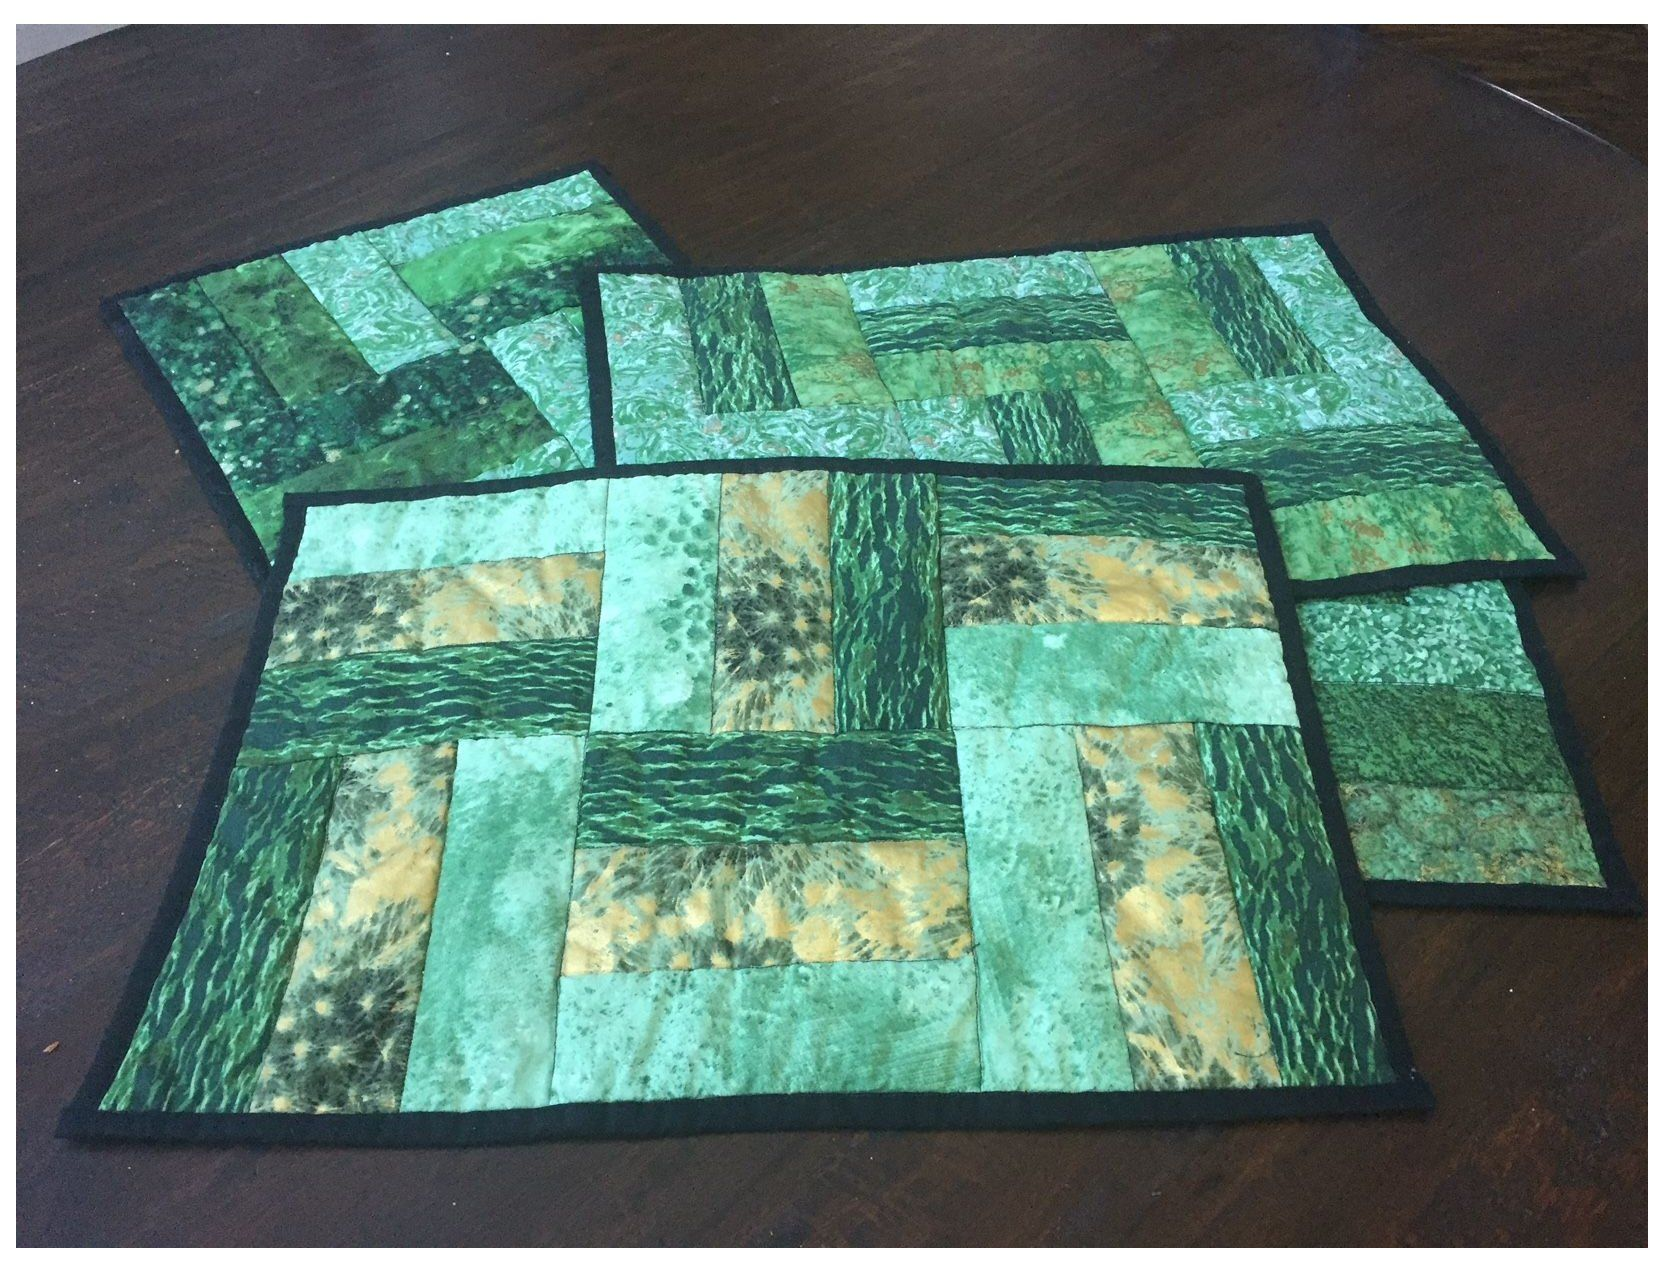 Jelly Roll Rug Place Mats Jellyrollrugplacemats Jelly Roll Place Mats Each One Is A Little D In 2020 Quilted Placemat Patterns Placemats Patterns Easy Placemats